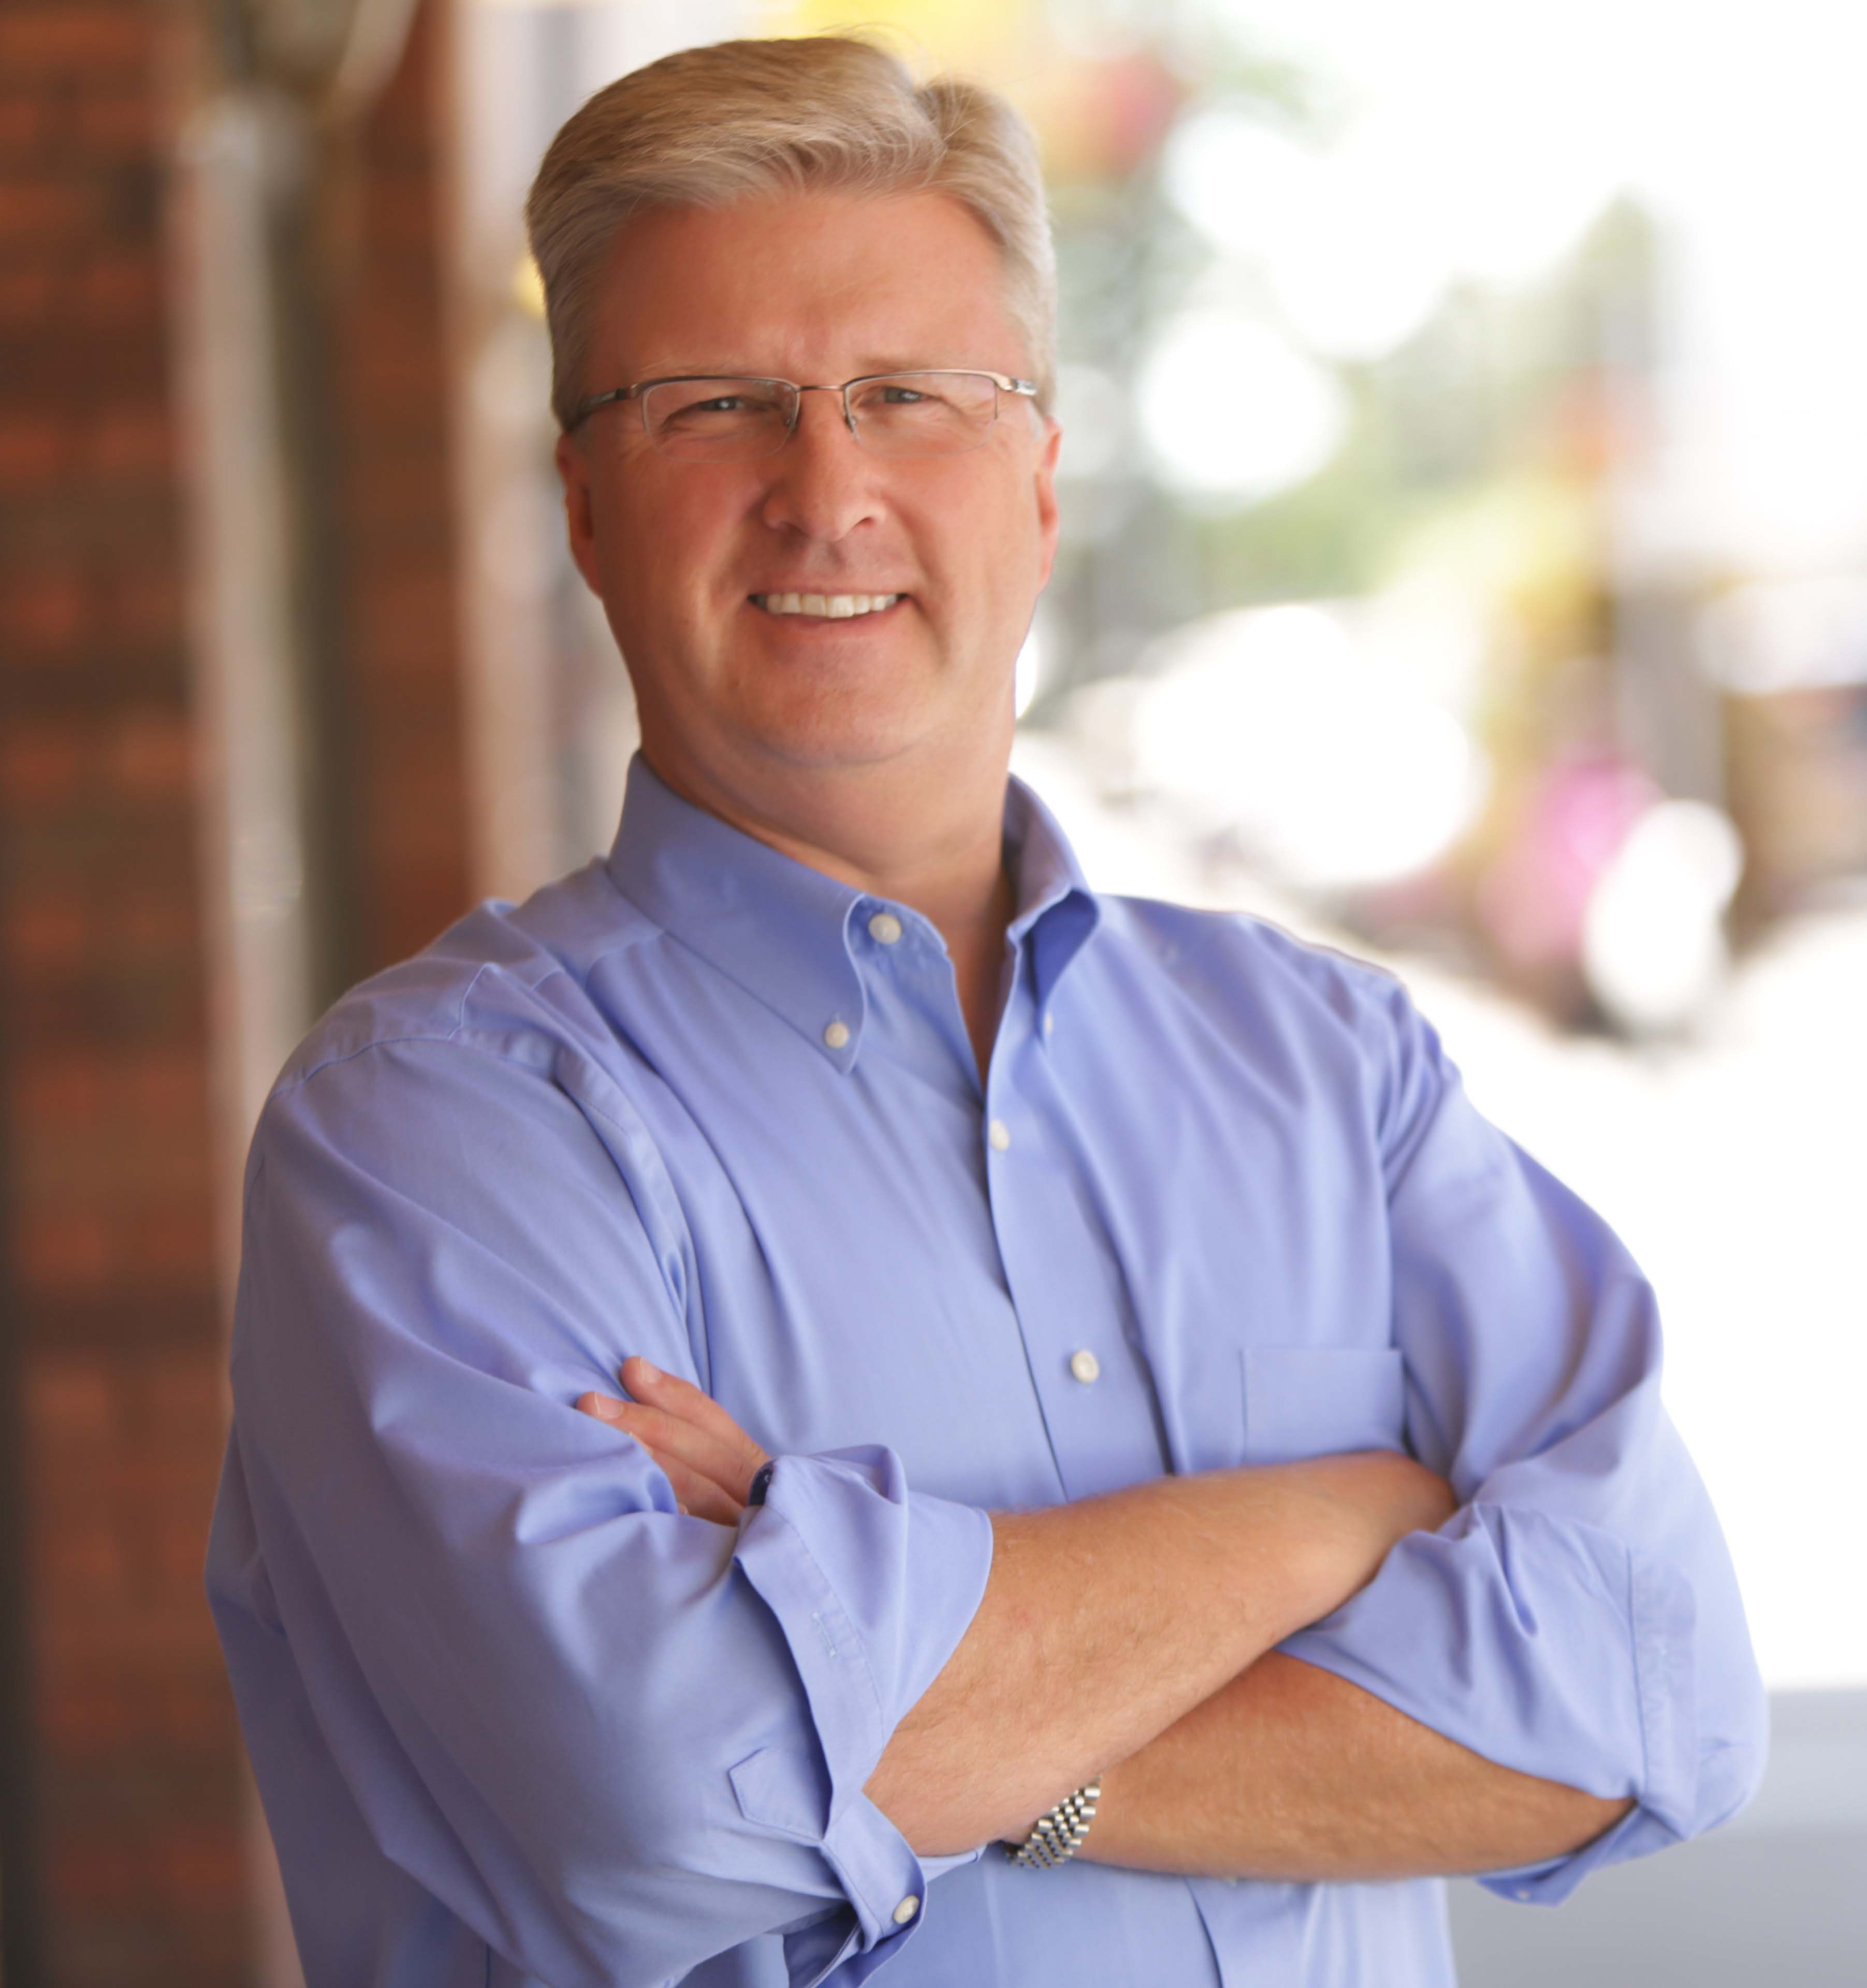 Bryan Smith Official Press Photo (https://bryansmithforcongress.com/)